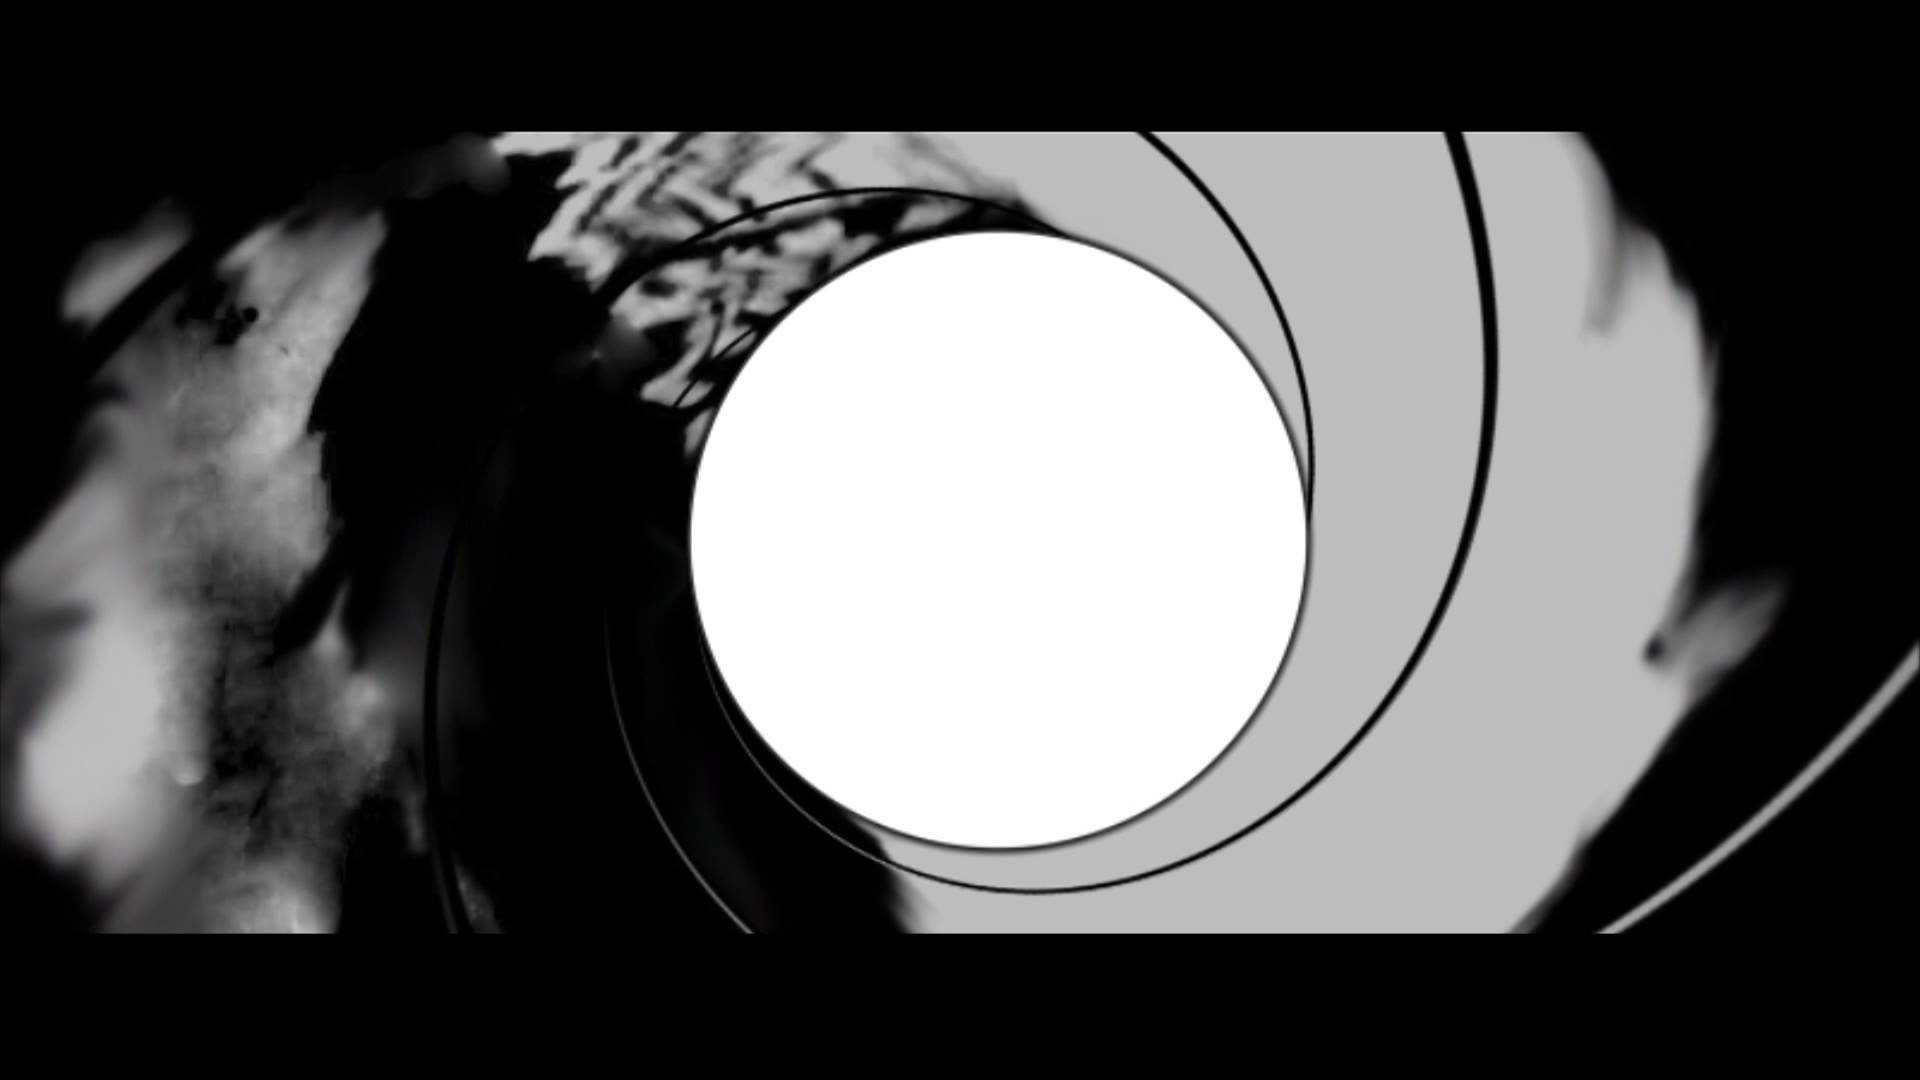 James Bond Gun Barrel Wallpaper 61 images 1920x1080